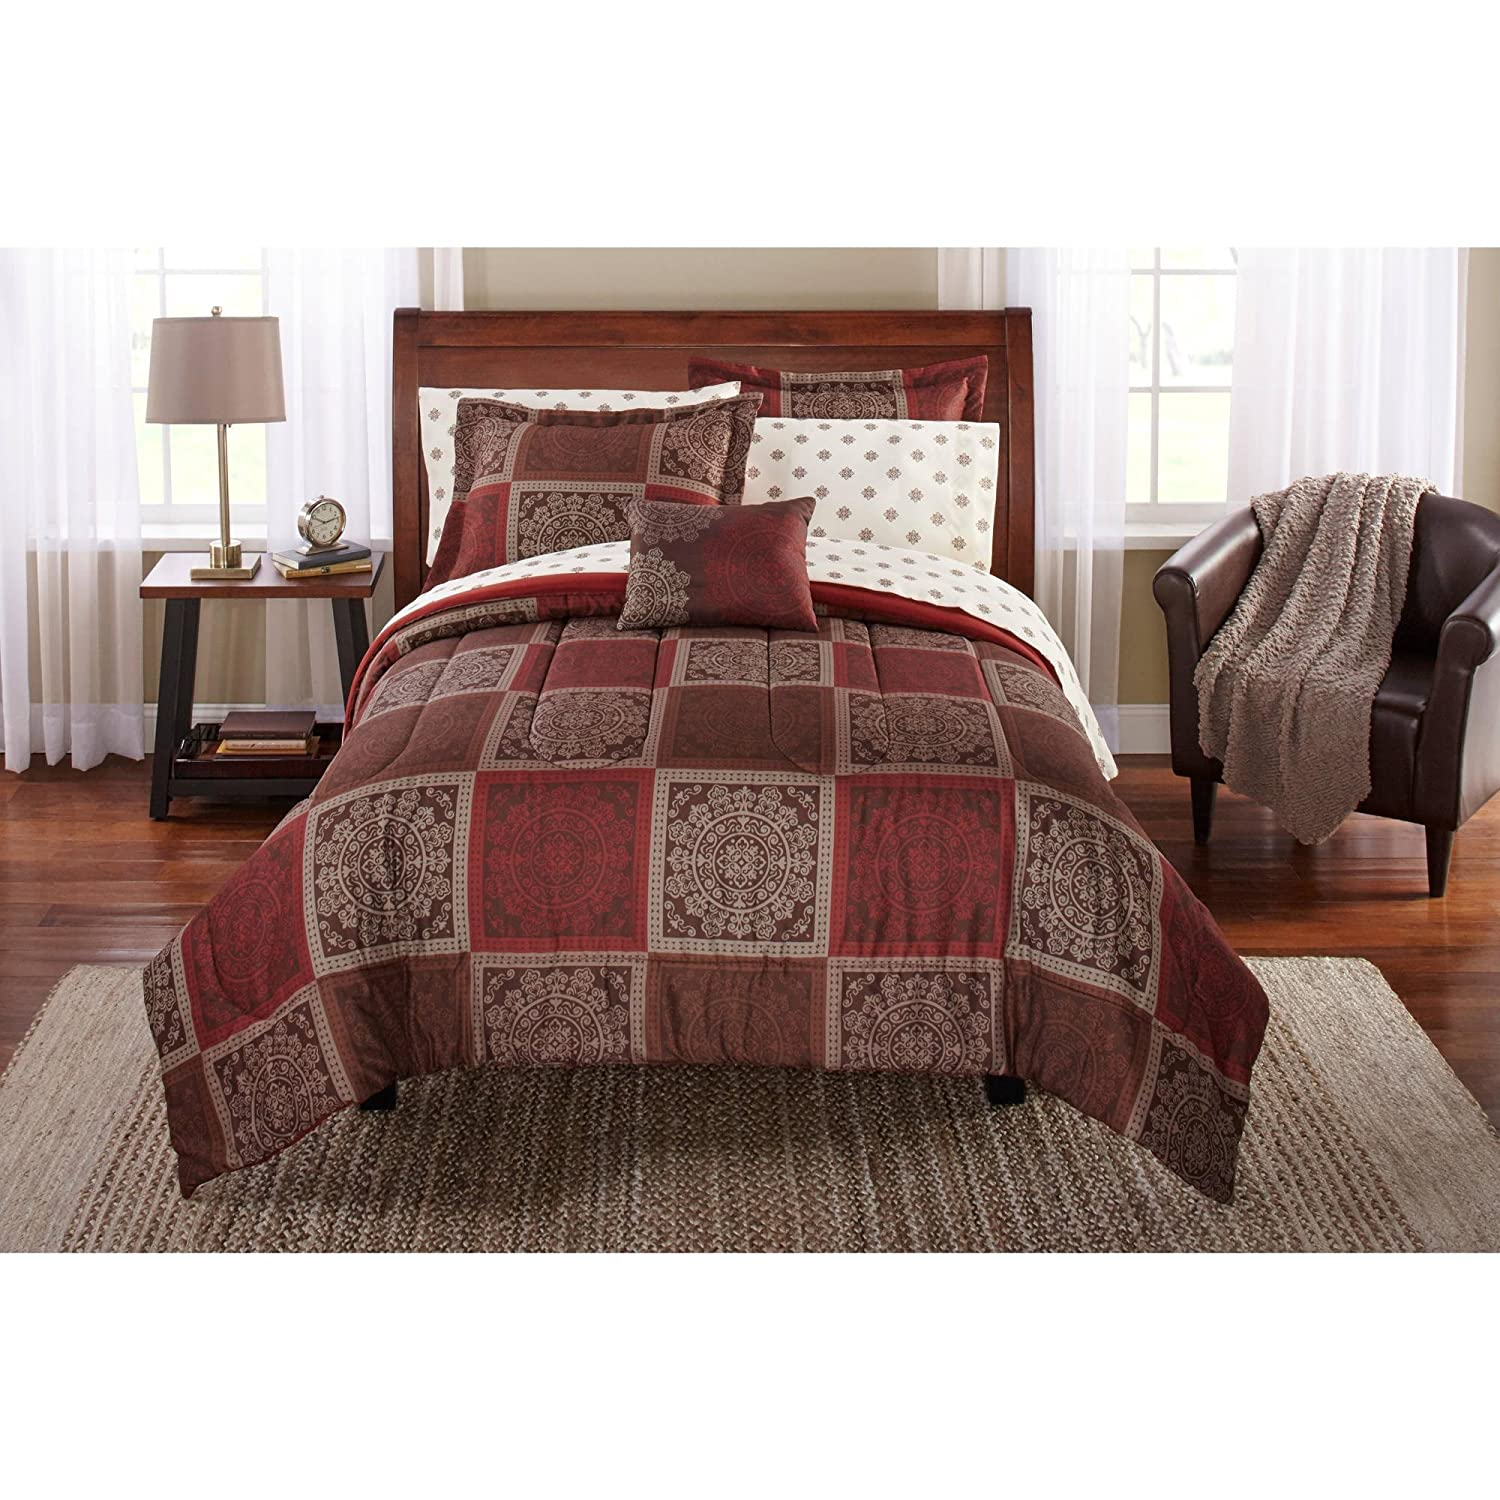 Mainstays Bed in a Bag Bedding Comforter Set, Tiles Design, TWIN Set, Brown & Burgundy Color